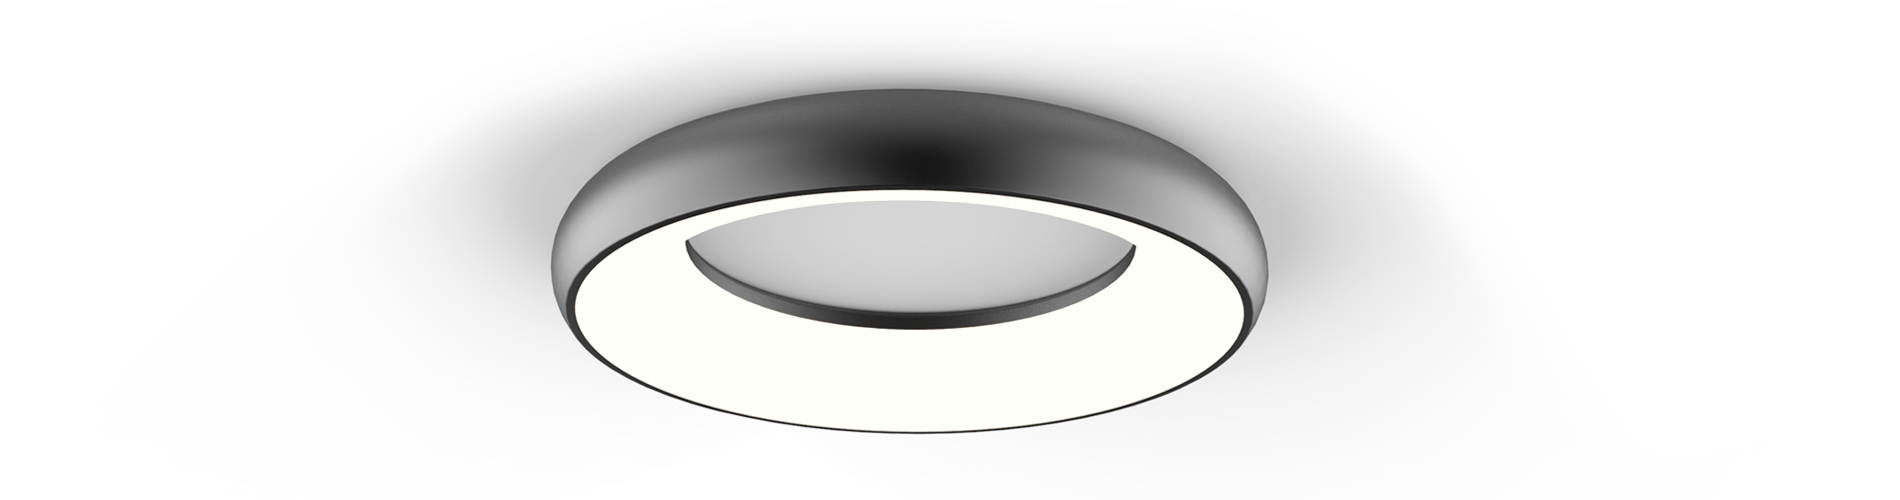 AL24 LED Ceiling Light